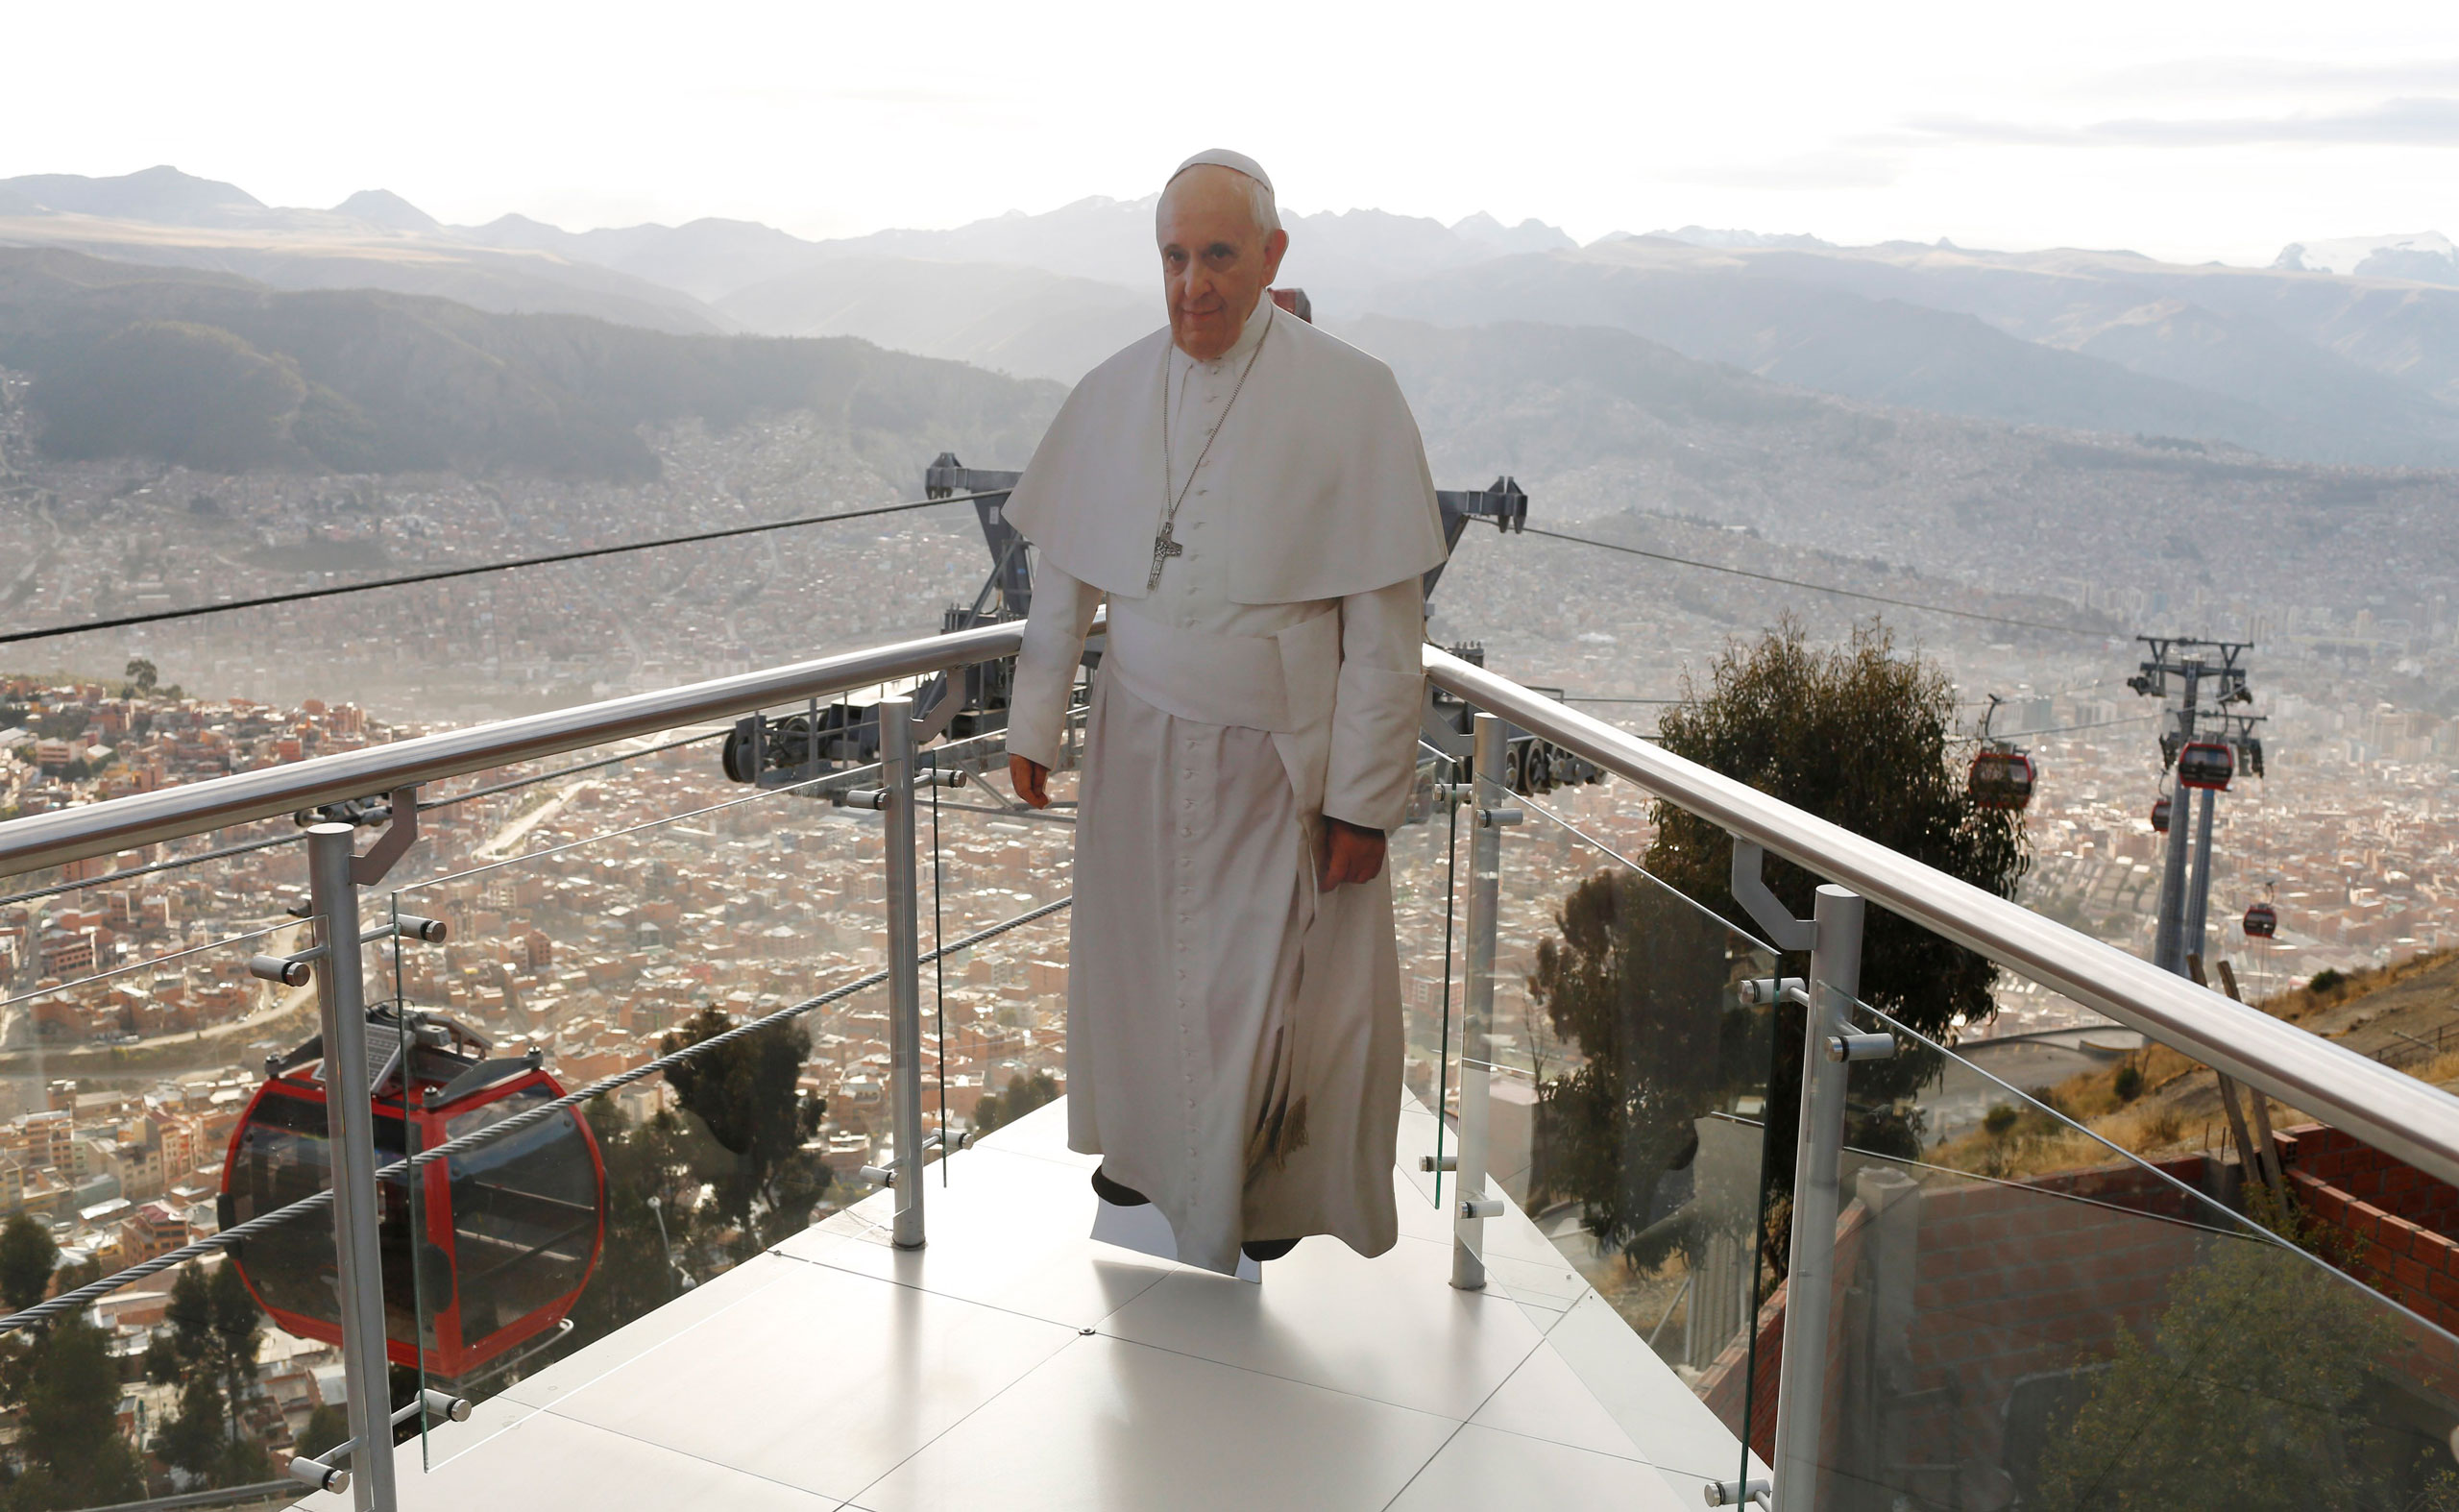 A life-size cutout image of Pope Francis stands on the cable car platform in El Alto, overlooking La Paz, Bolivia, on July 3, 2015.